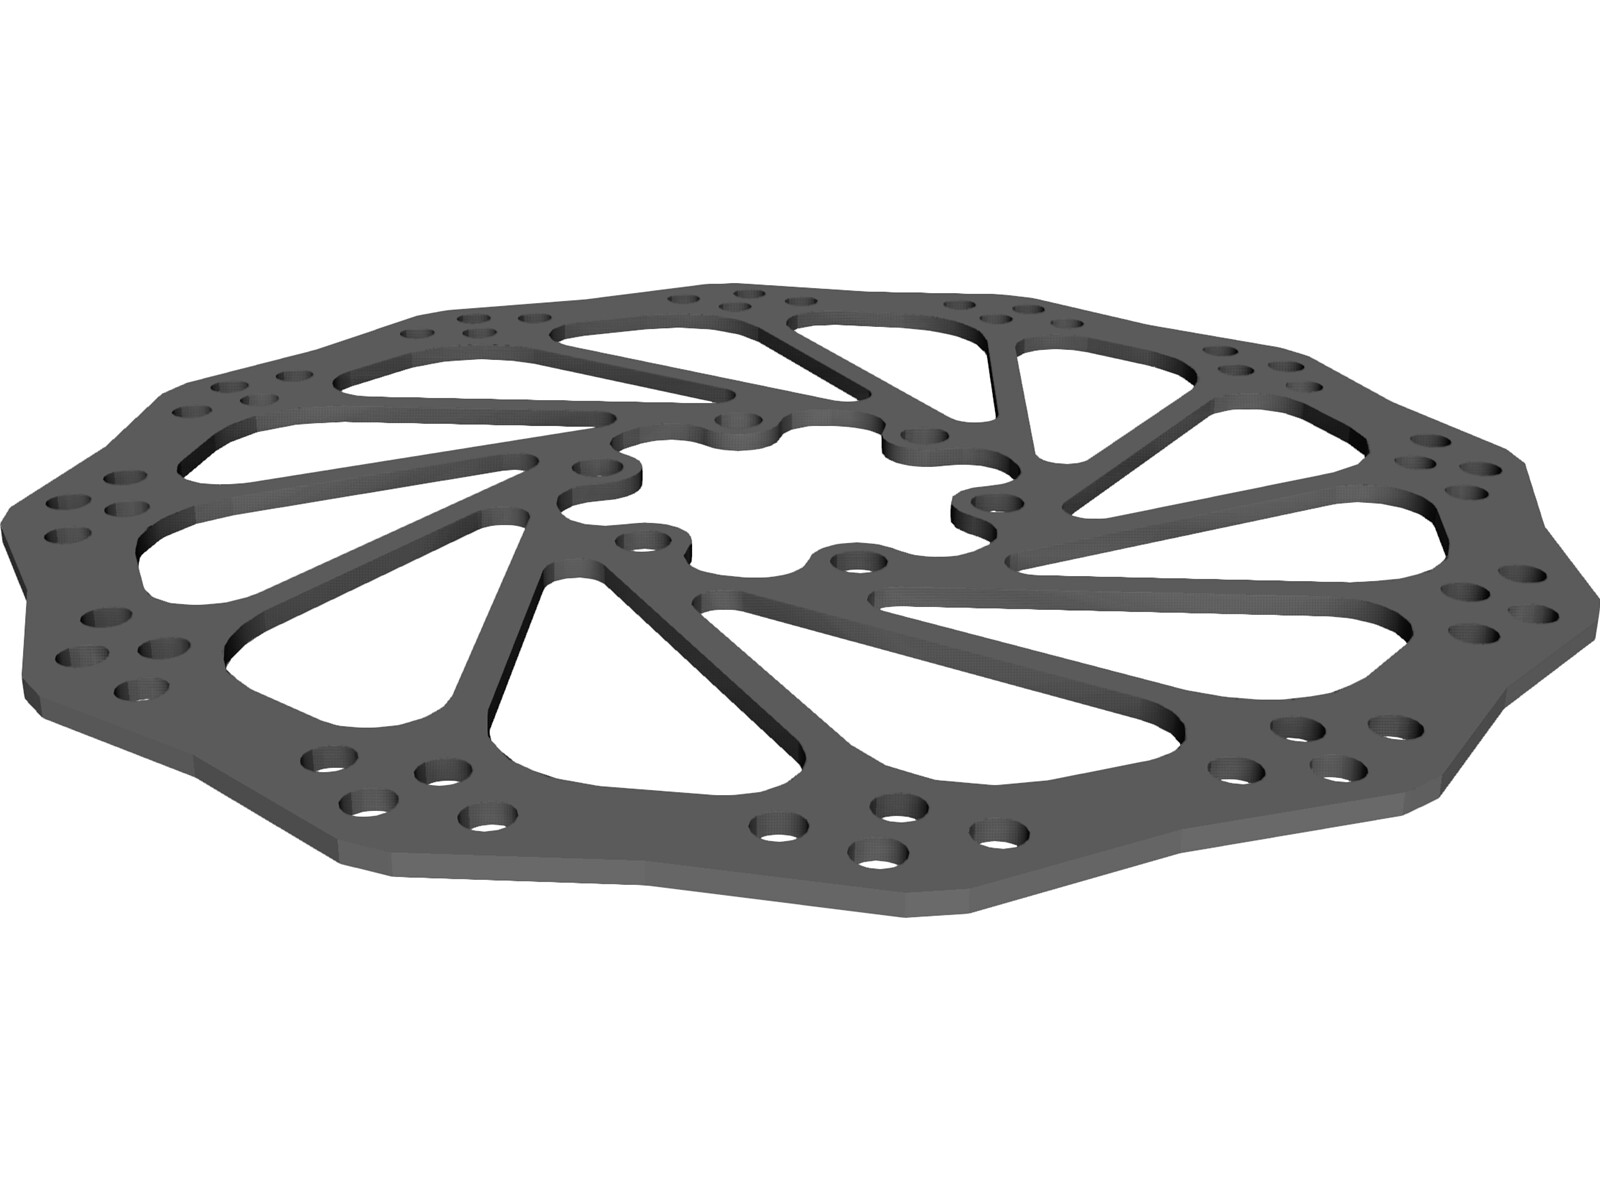 Mountain Bike Brake Rotor 3D Model